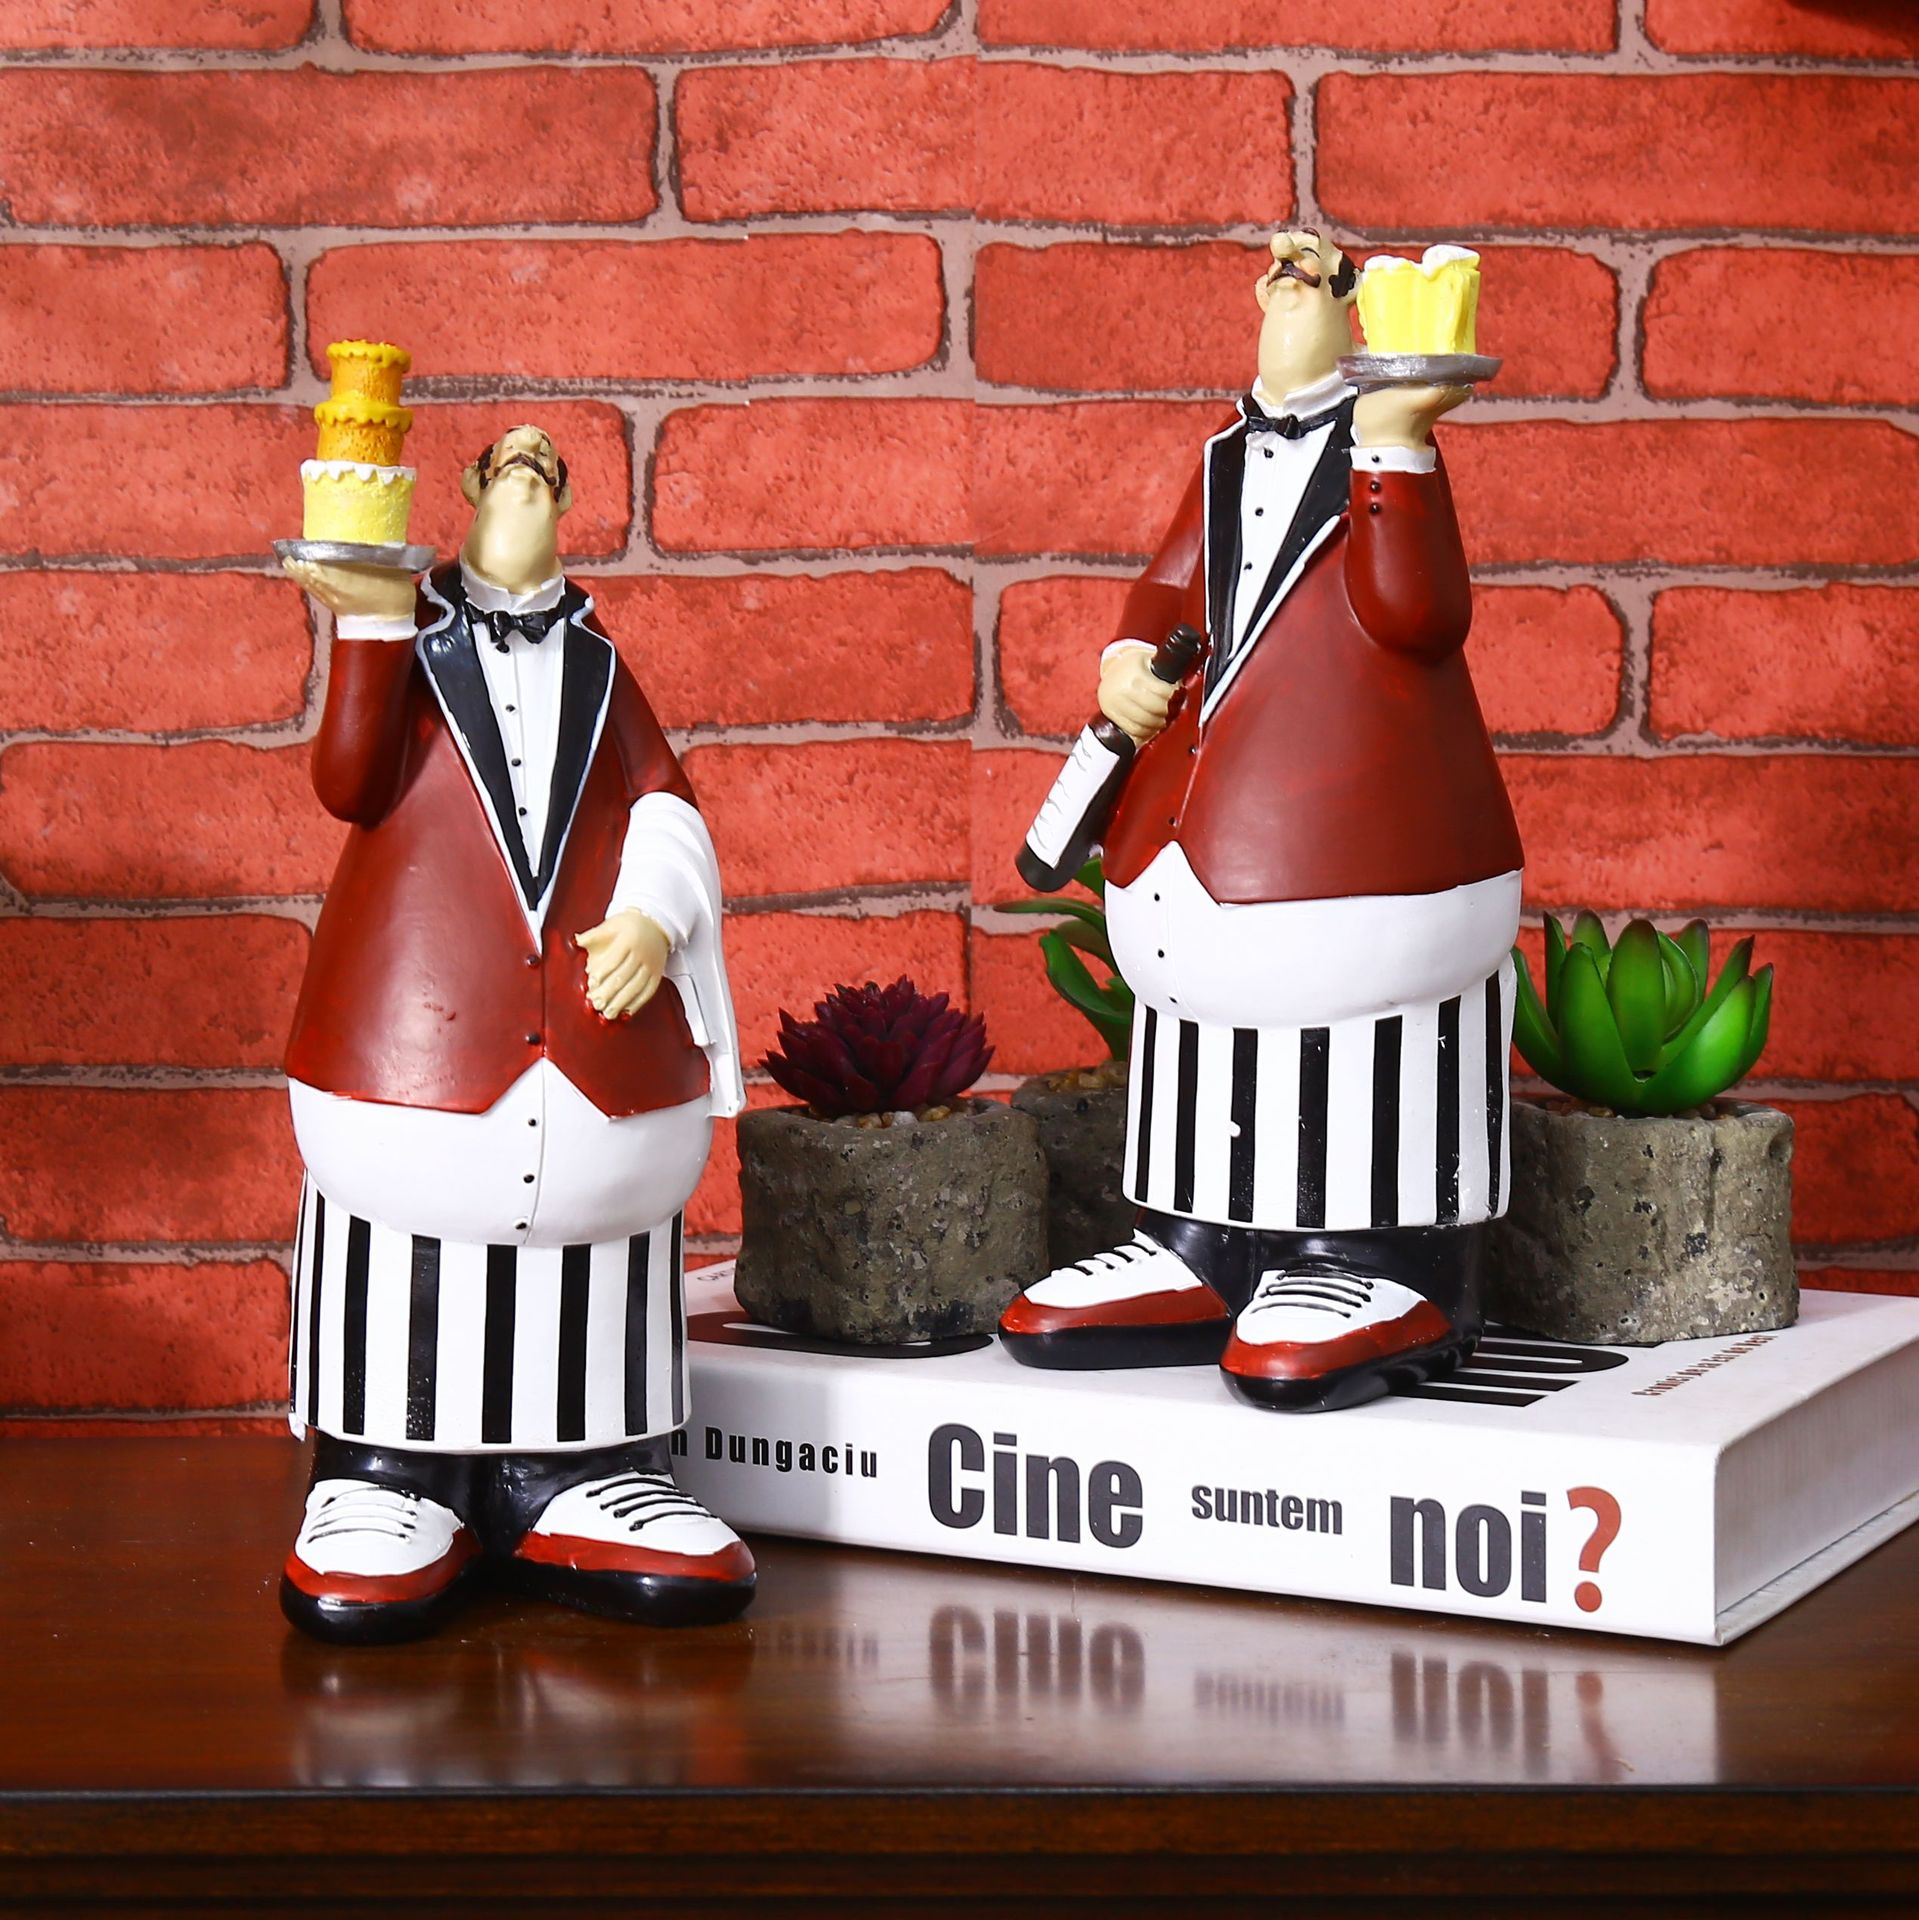 Patisserie chef model crafts decorative home decor for Home decor accessories